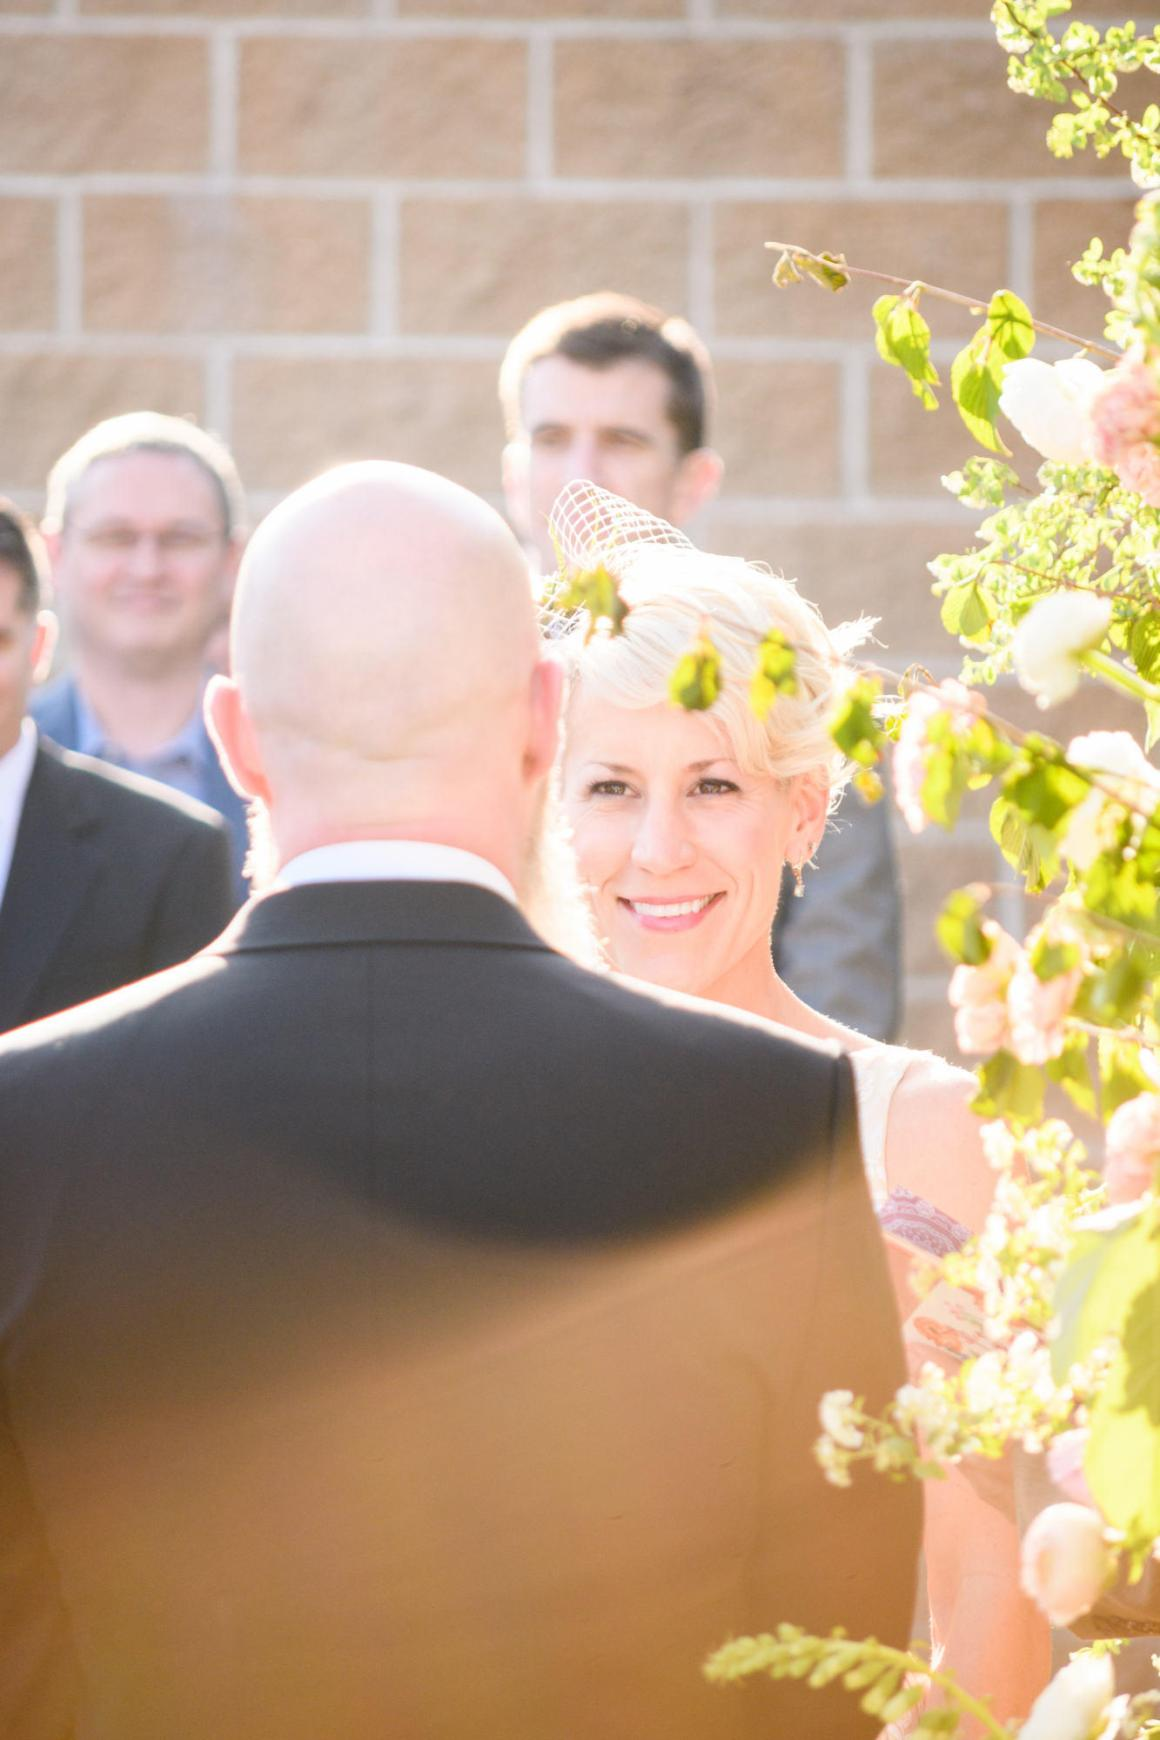 Mike and Kathie Palm Door on Sixth Courtyard Wedding Ceremony